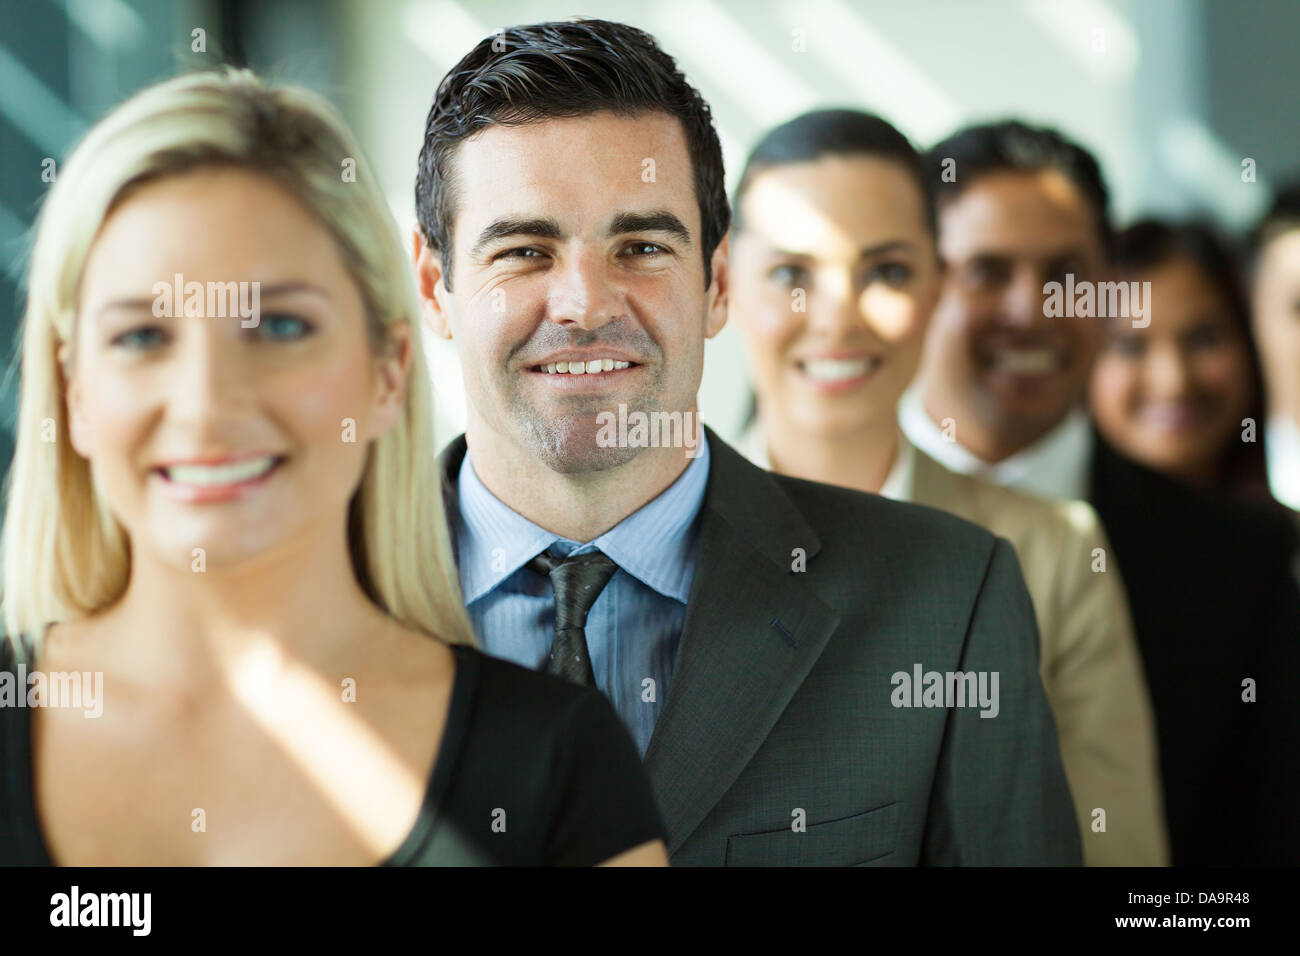 group of modern business people in a row - Stock Image